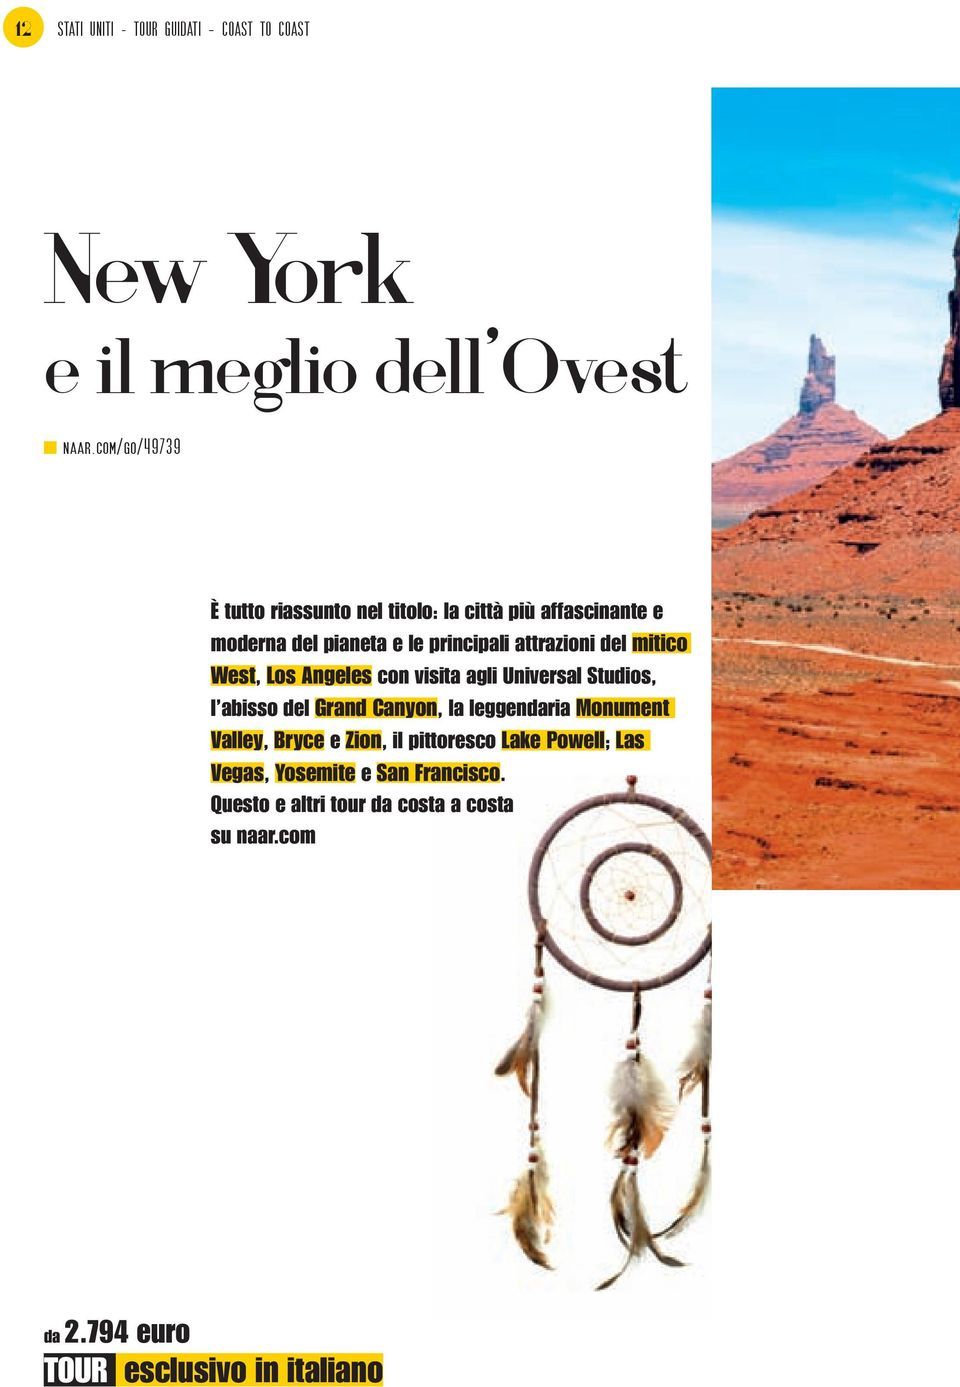 mitico West, Los Angeles con visita agli Universal Studios, l abisso del Grand Canyon, la leggendaria Monument Valley,